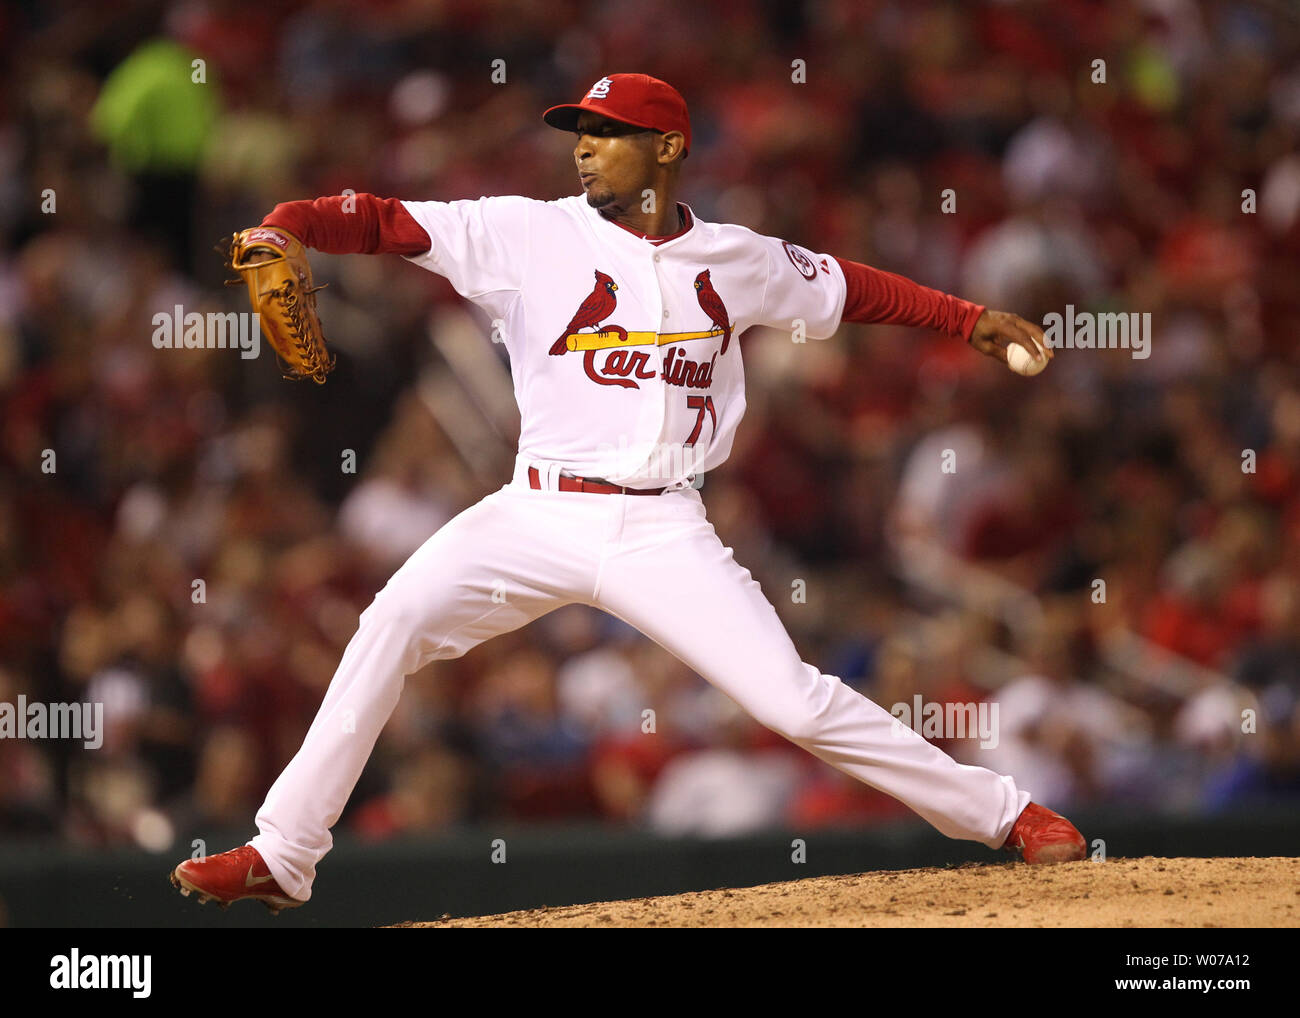 St. Louis Cardinals pitcher Sam Freeman works against the Los Angeles Dodgers in the seventh inning  at Busch Stadium in St. Louis on August 8, 2013. Los Angeles won the game 5-1.   UPI/Bill Greenblatt Stock Photo